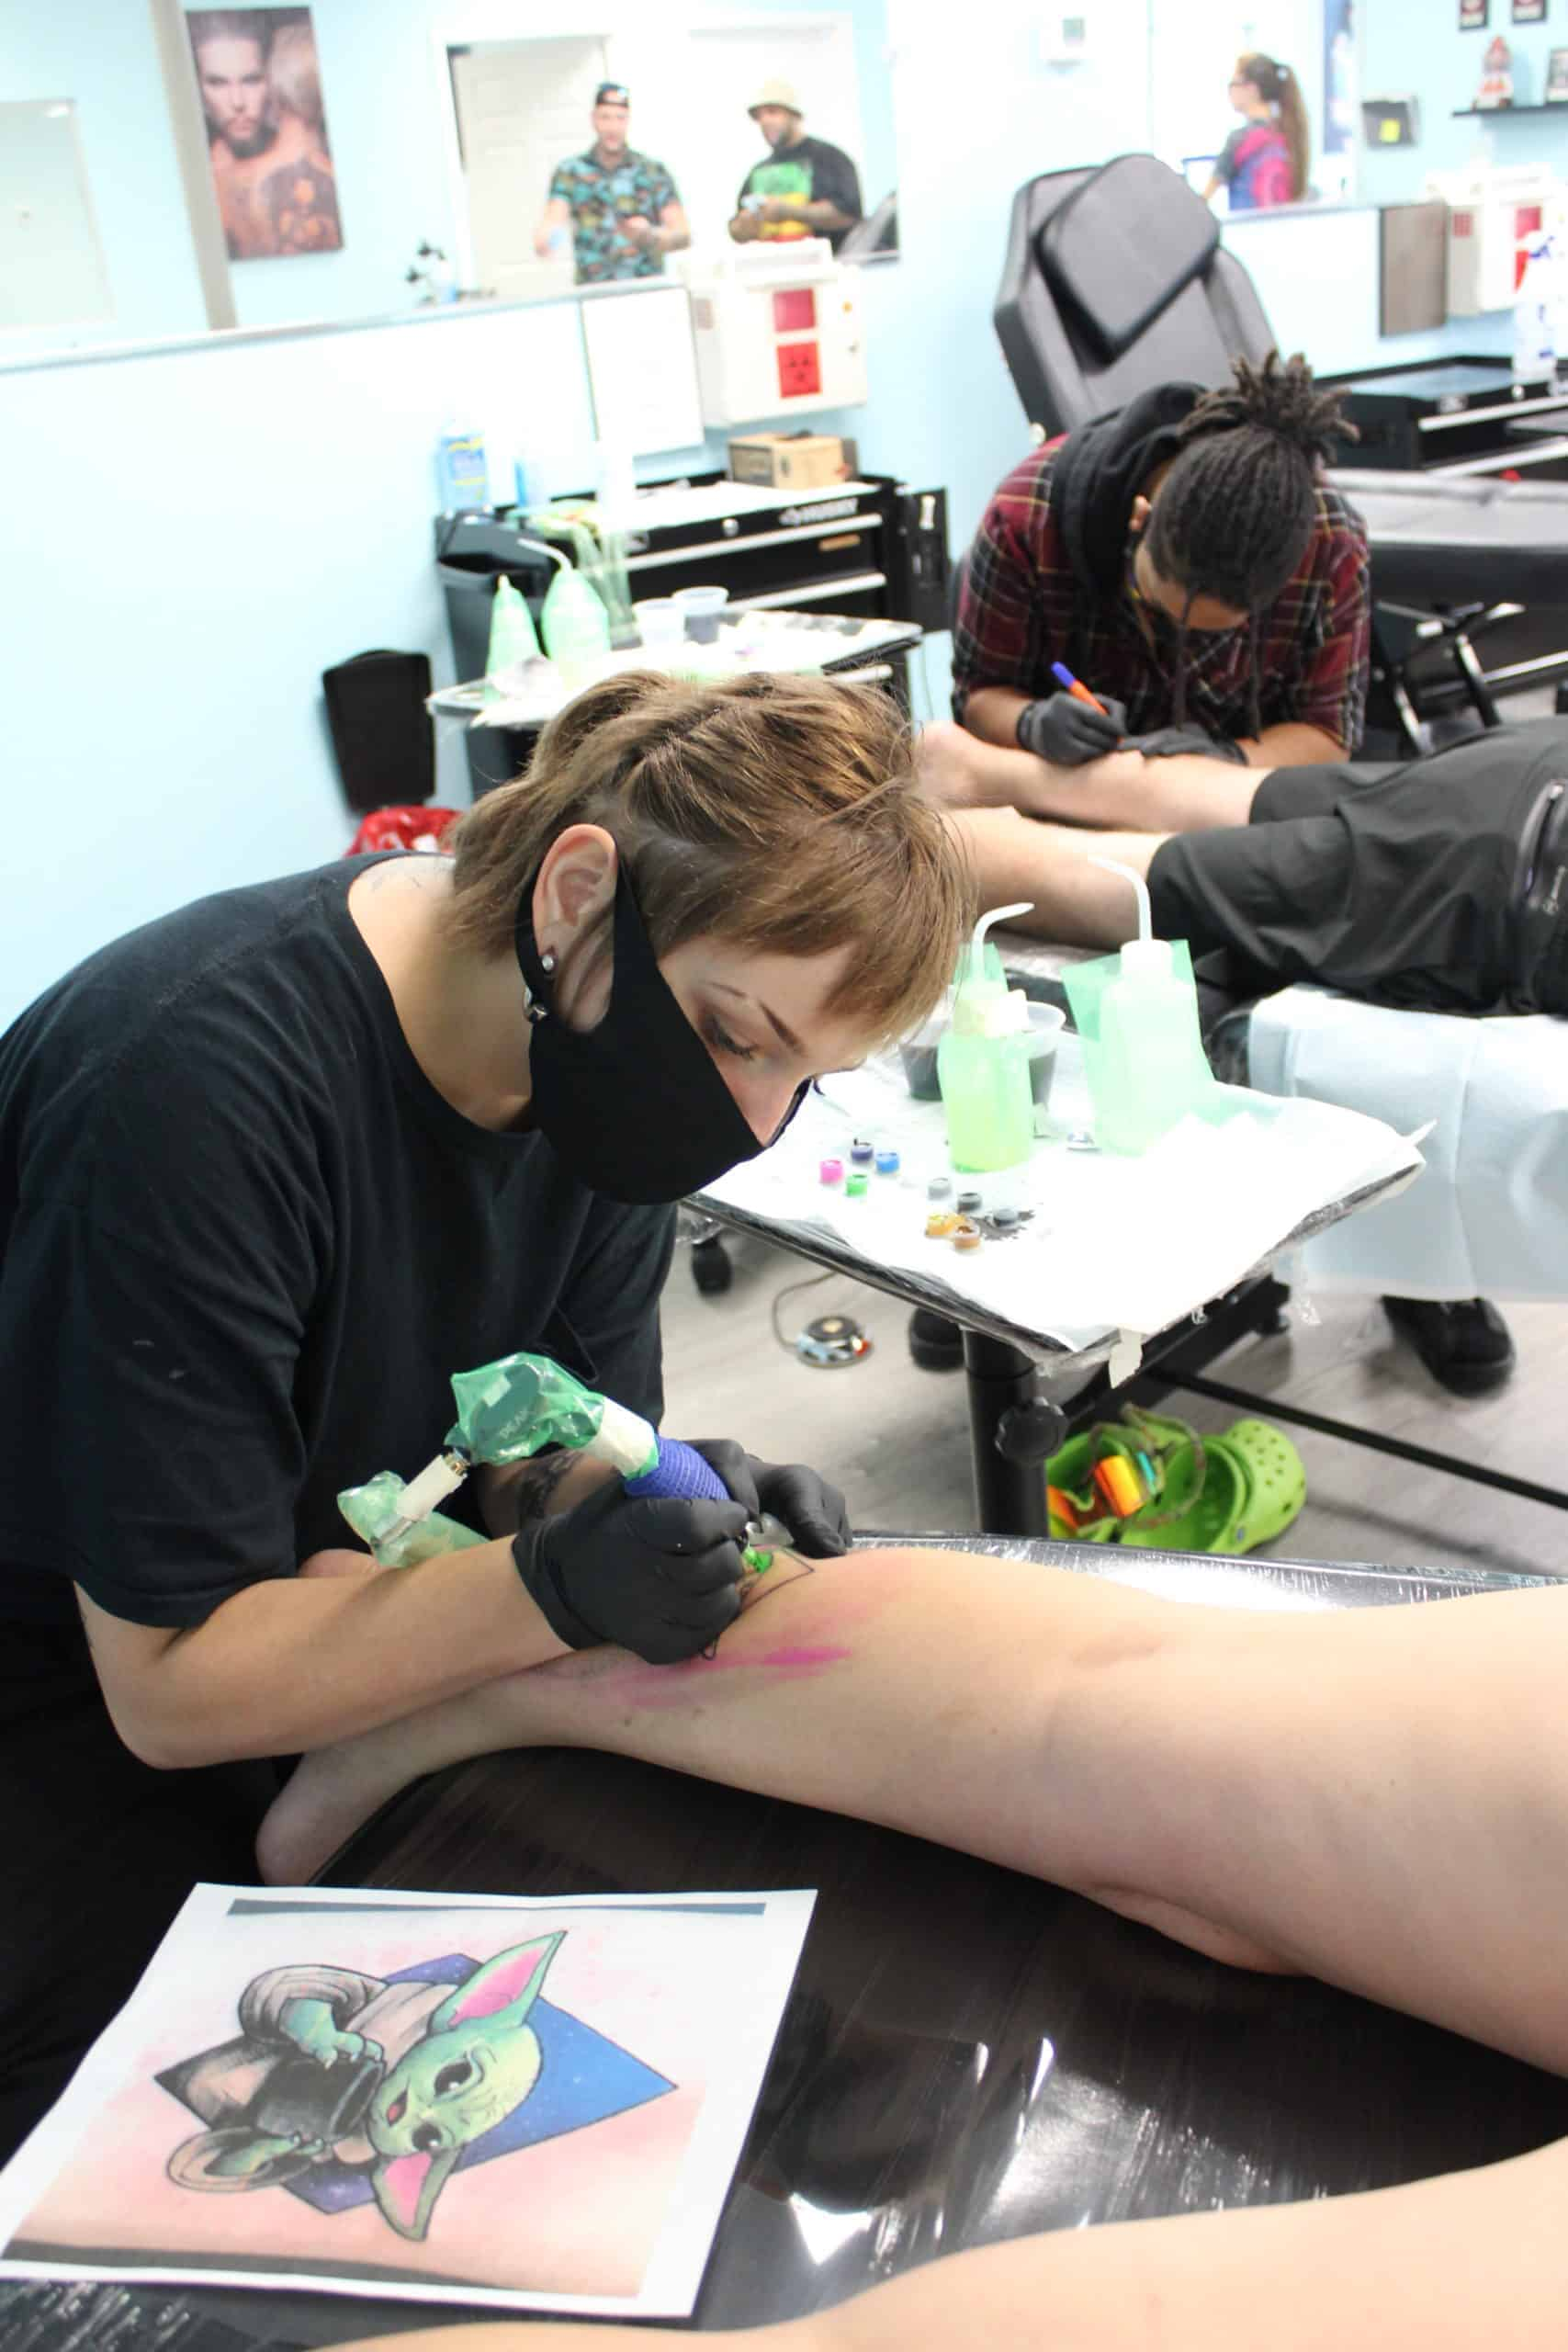 tattoo student working on tattooing calf